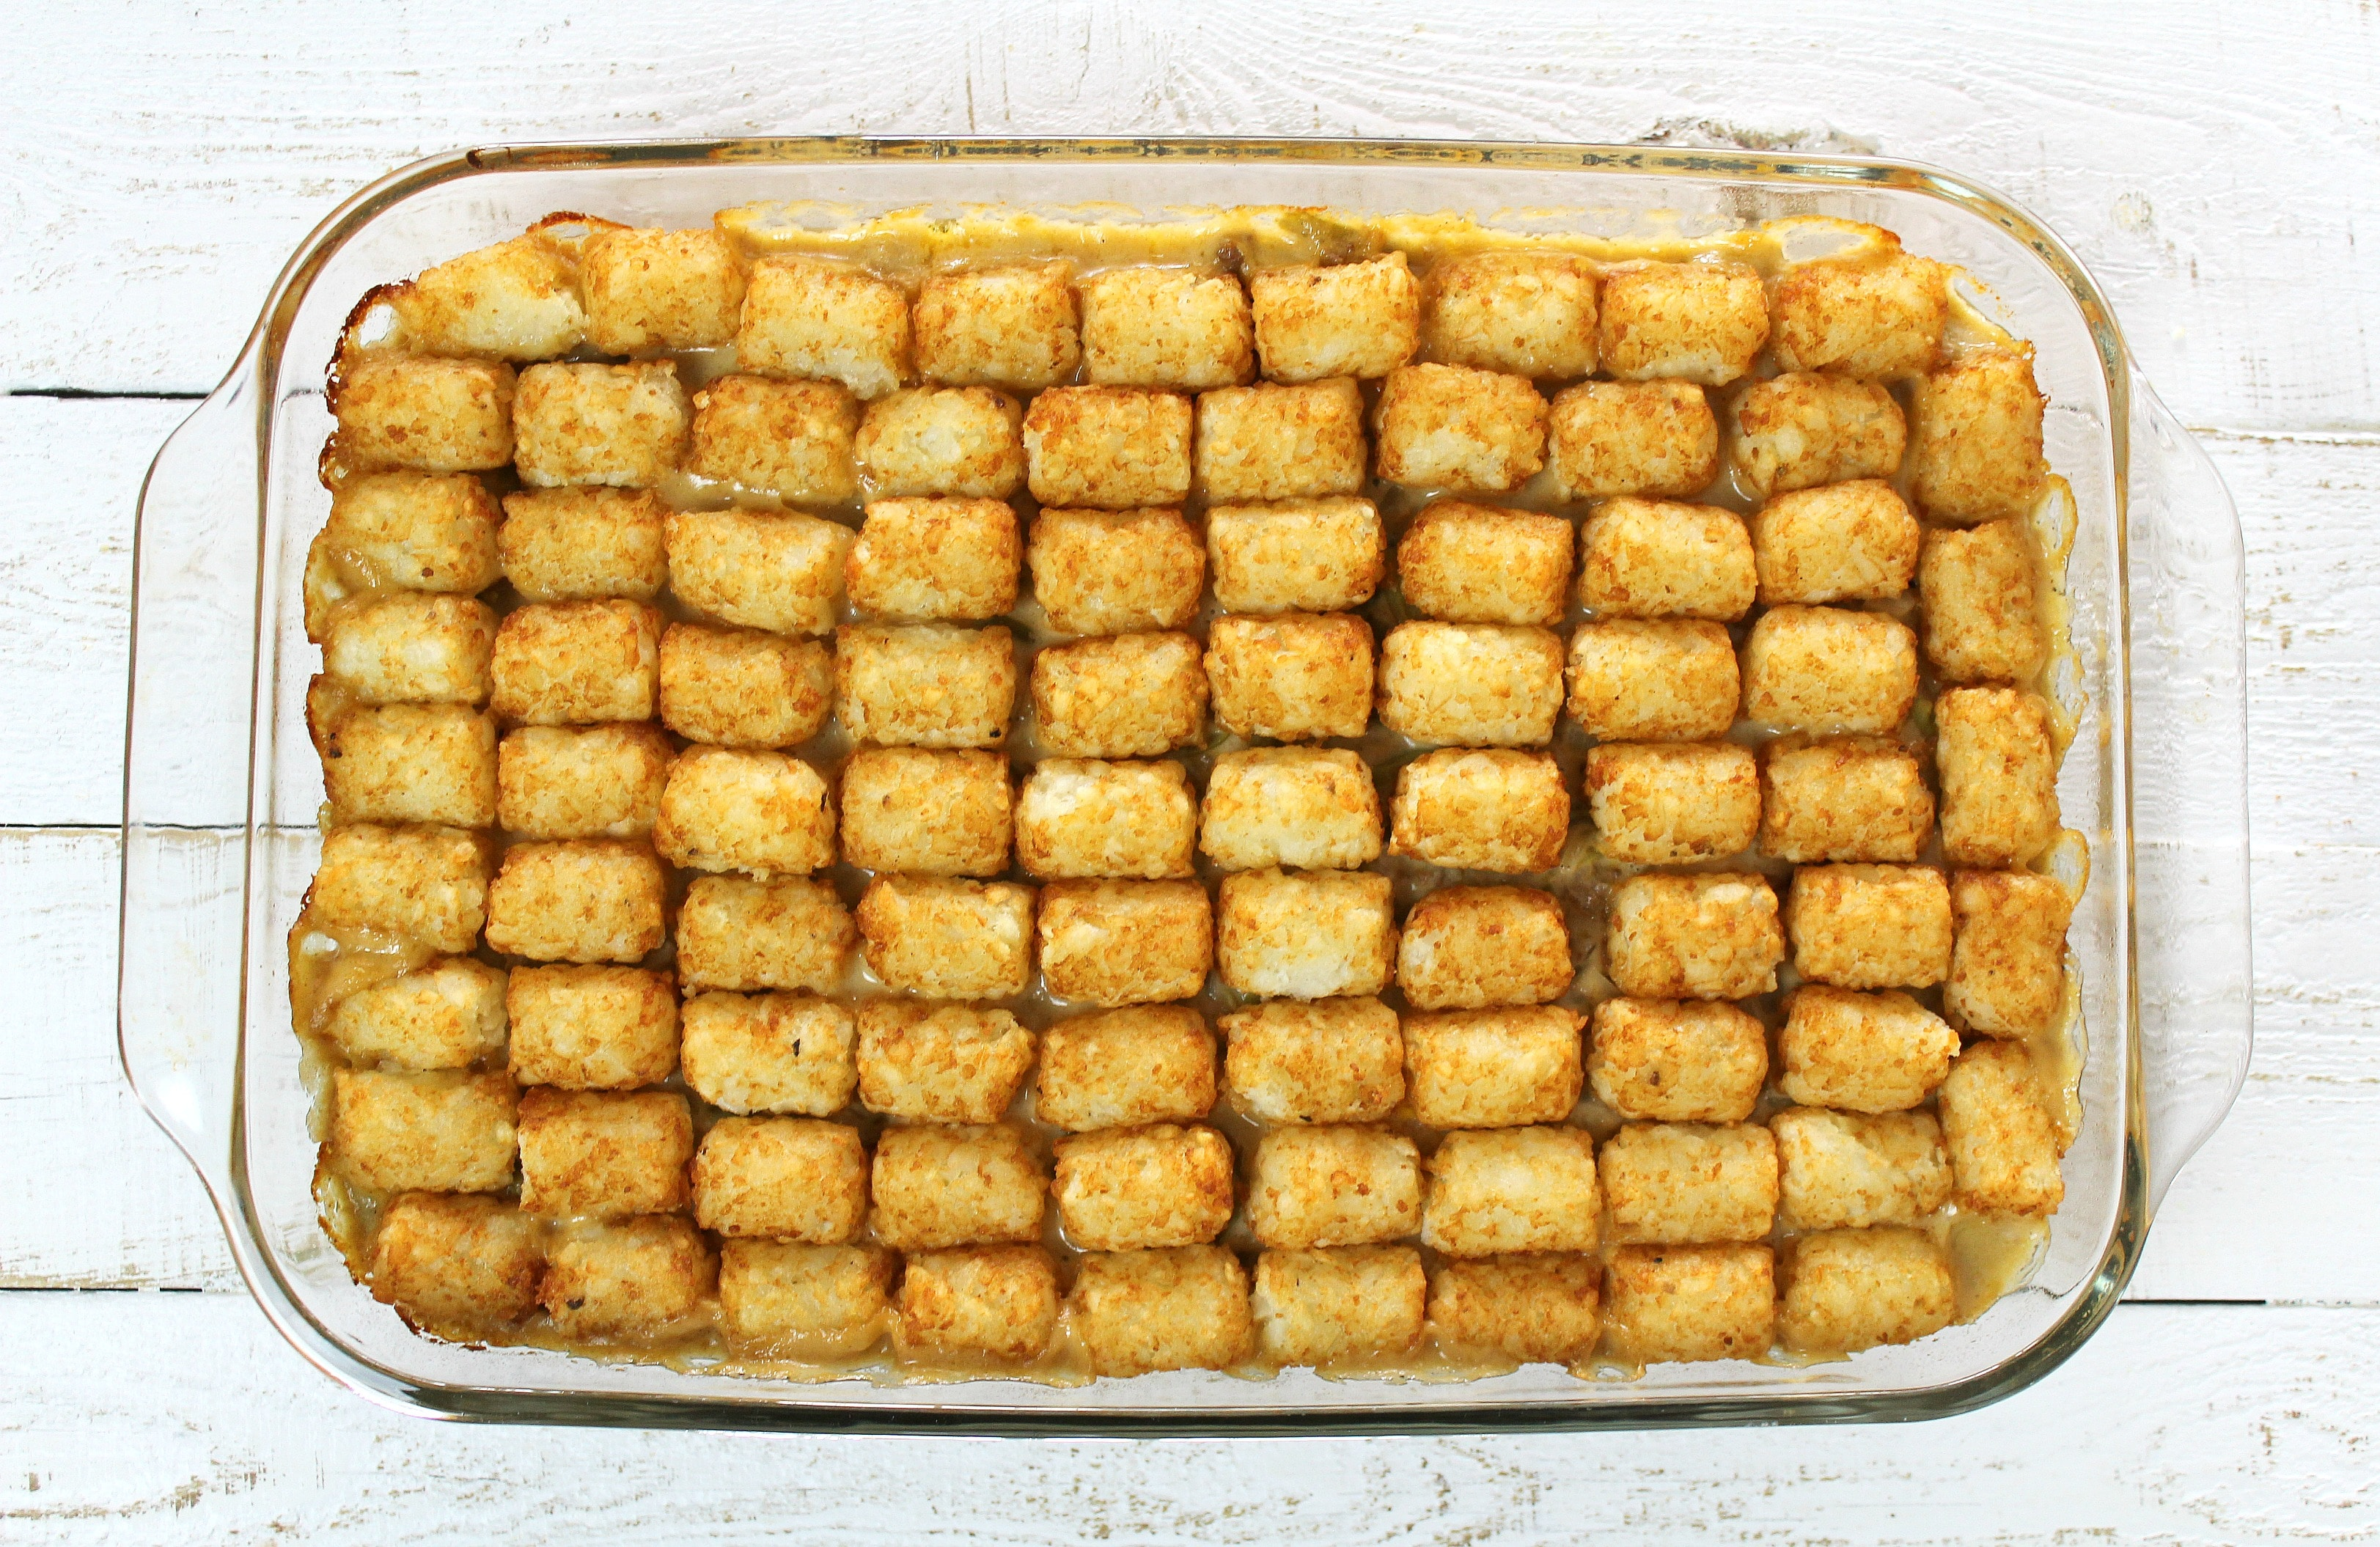 Tater Tot Casserole | Bake the casserole for 20-25 minutes, until the tater tots are golden brown.